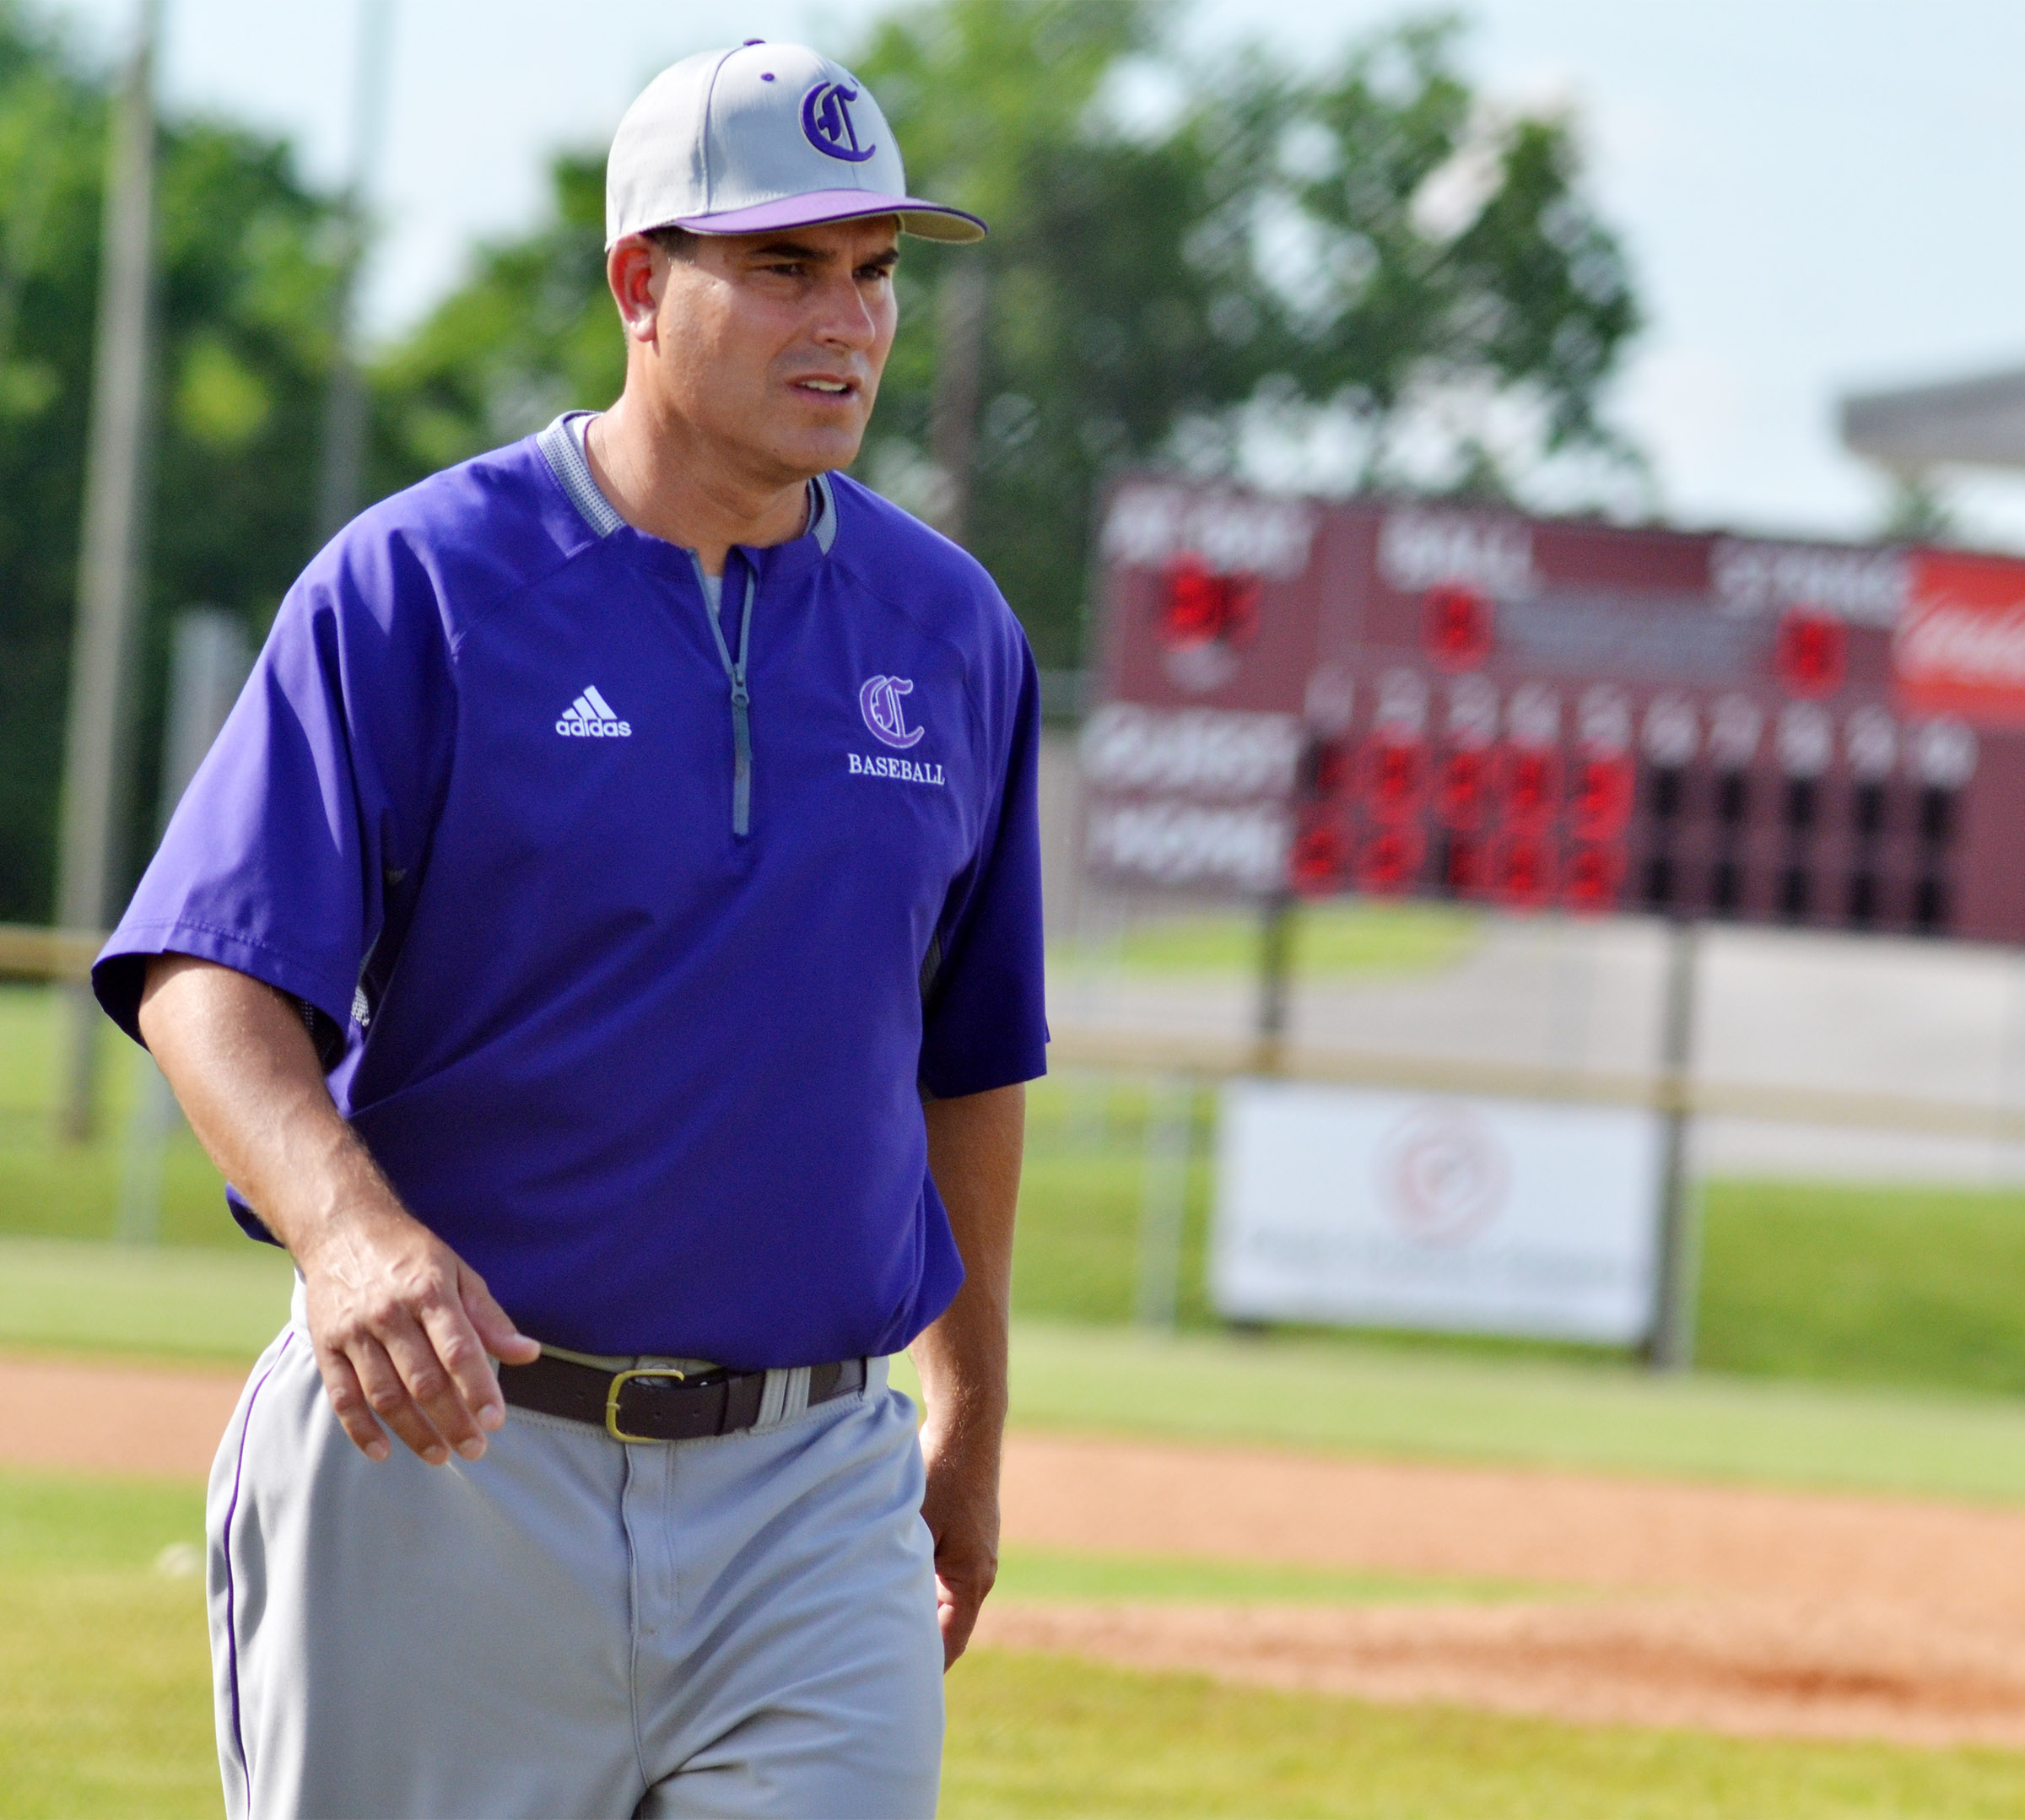 CHS head baseball coach Kirby Smith walks to the dugout.